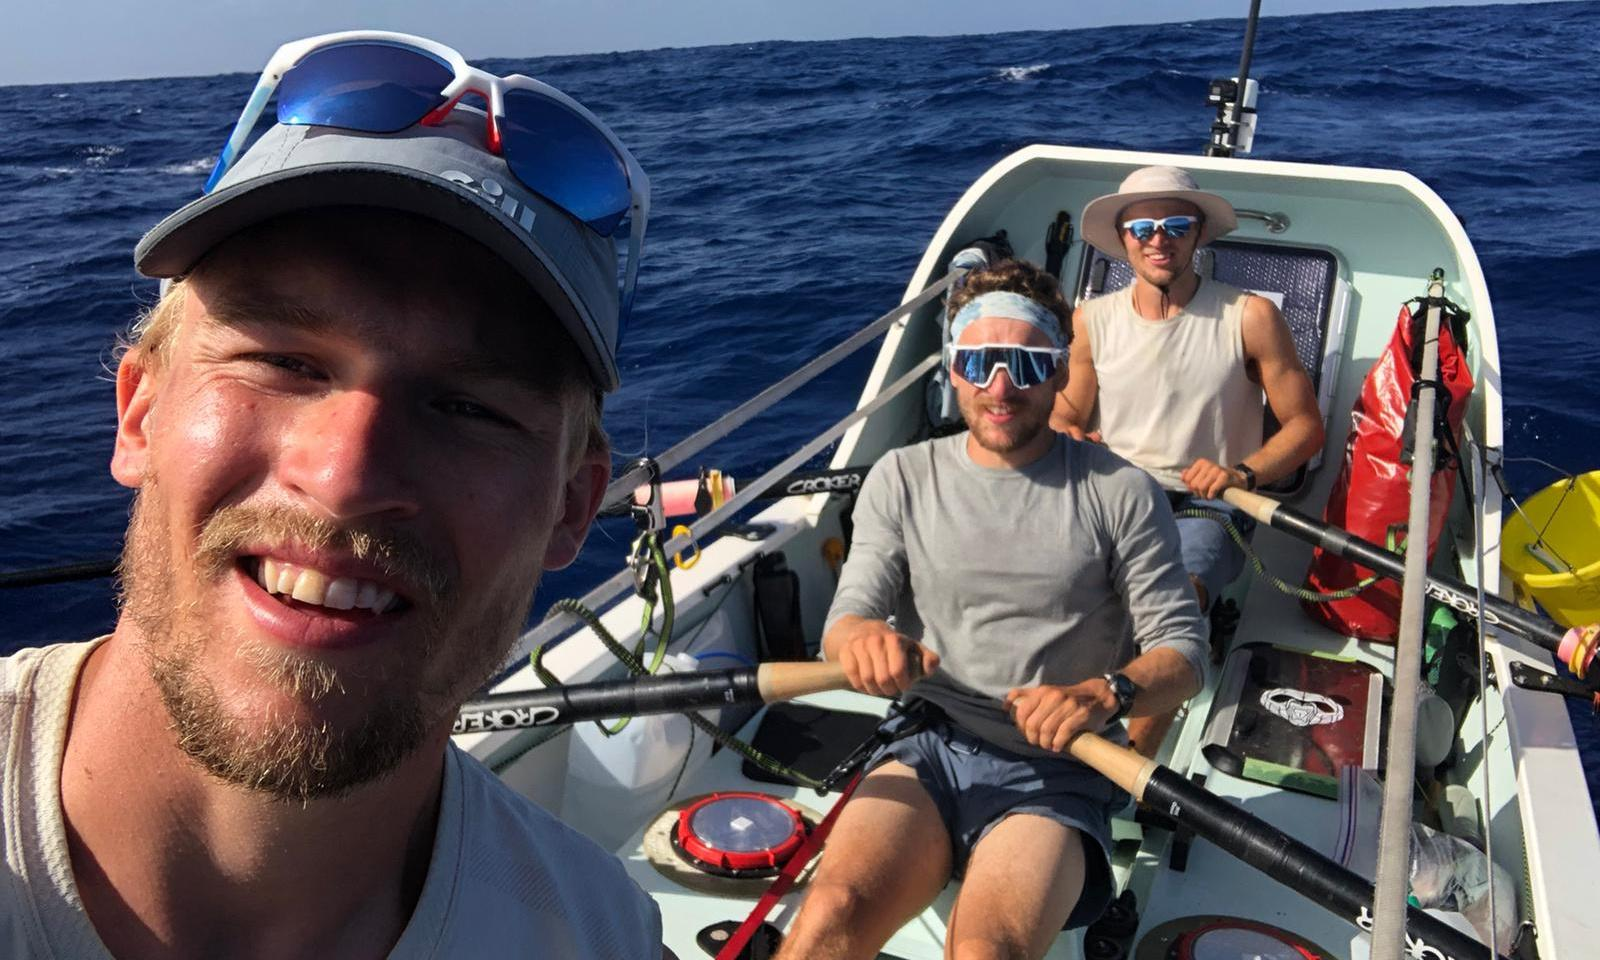 'Being brothers was a big help': Atlantic rowers tell of record-breaking trip